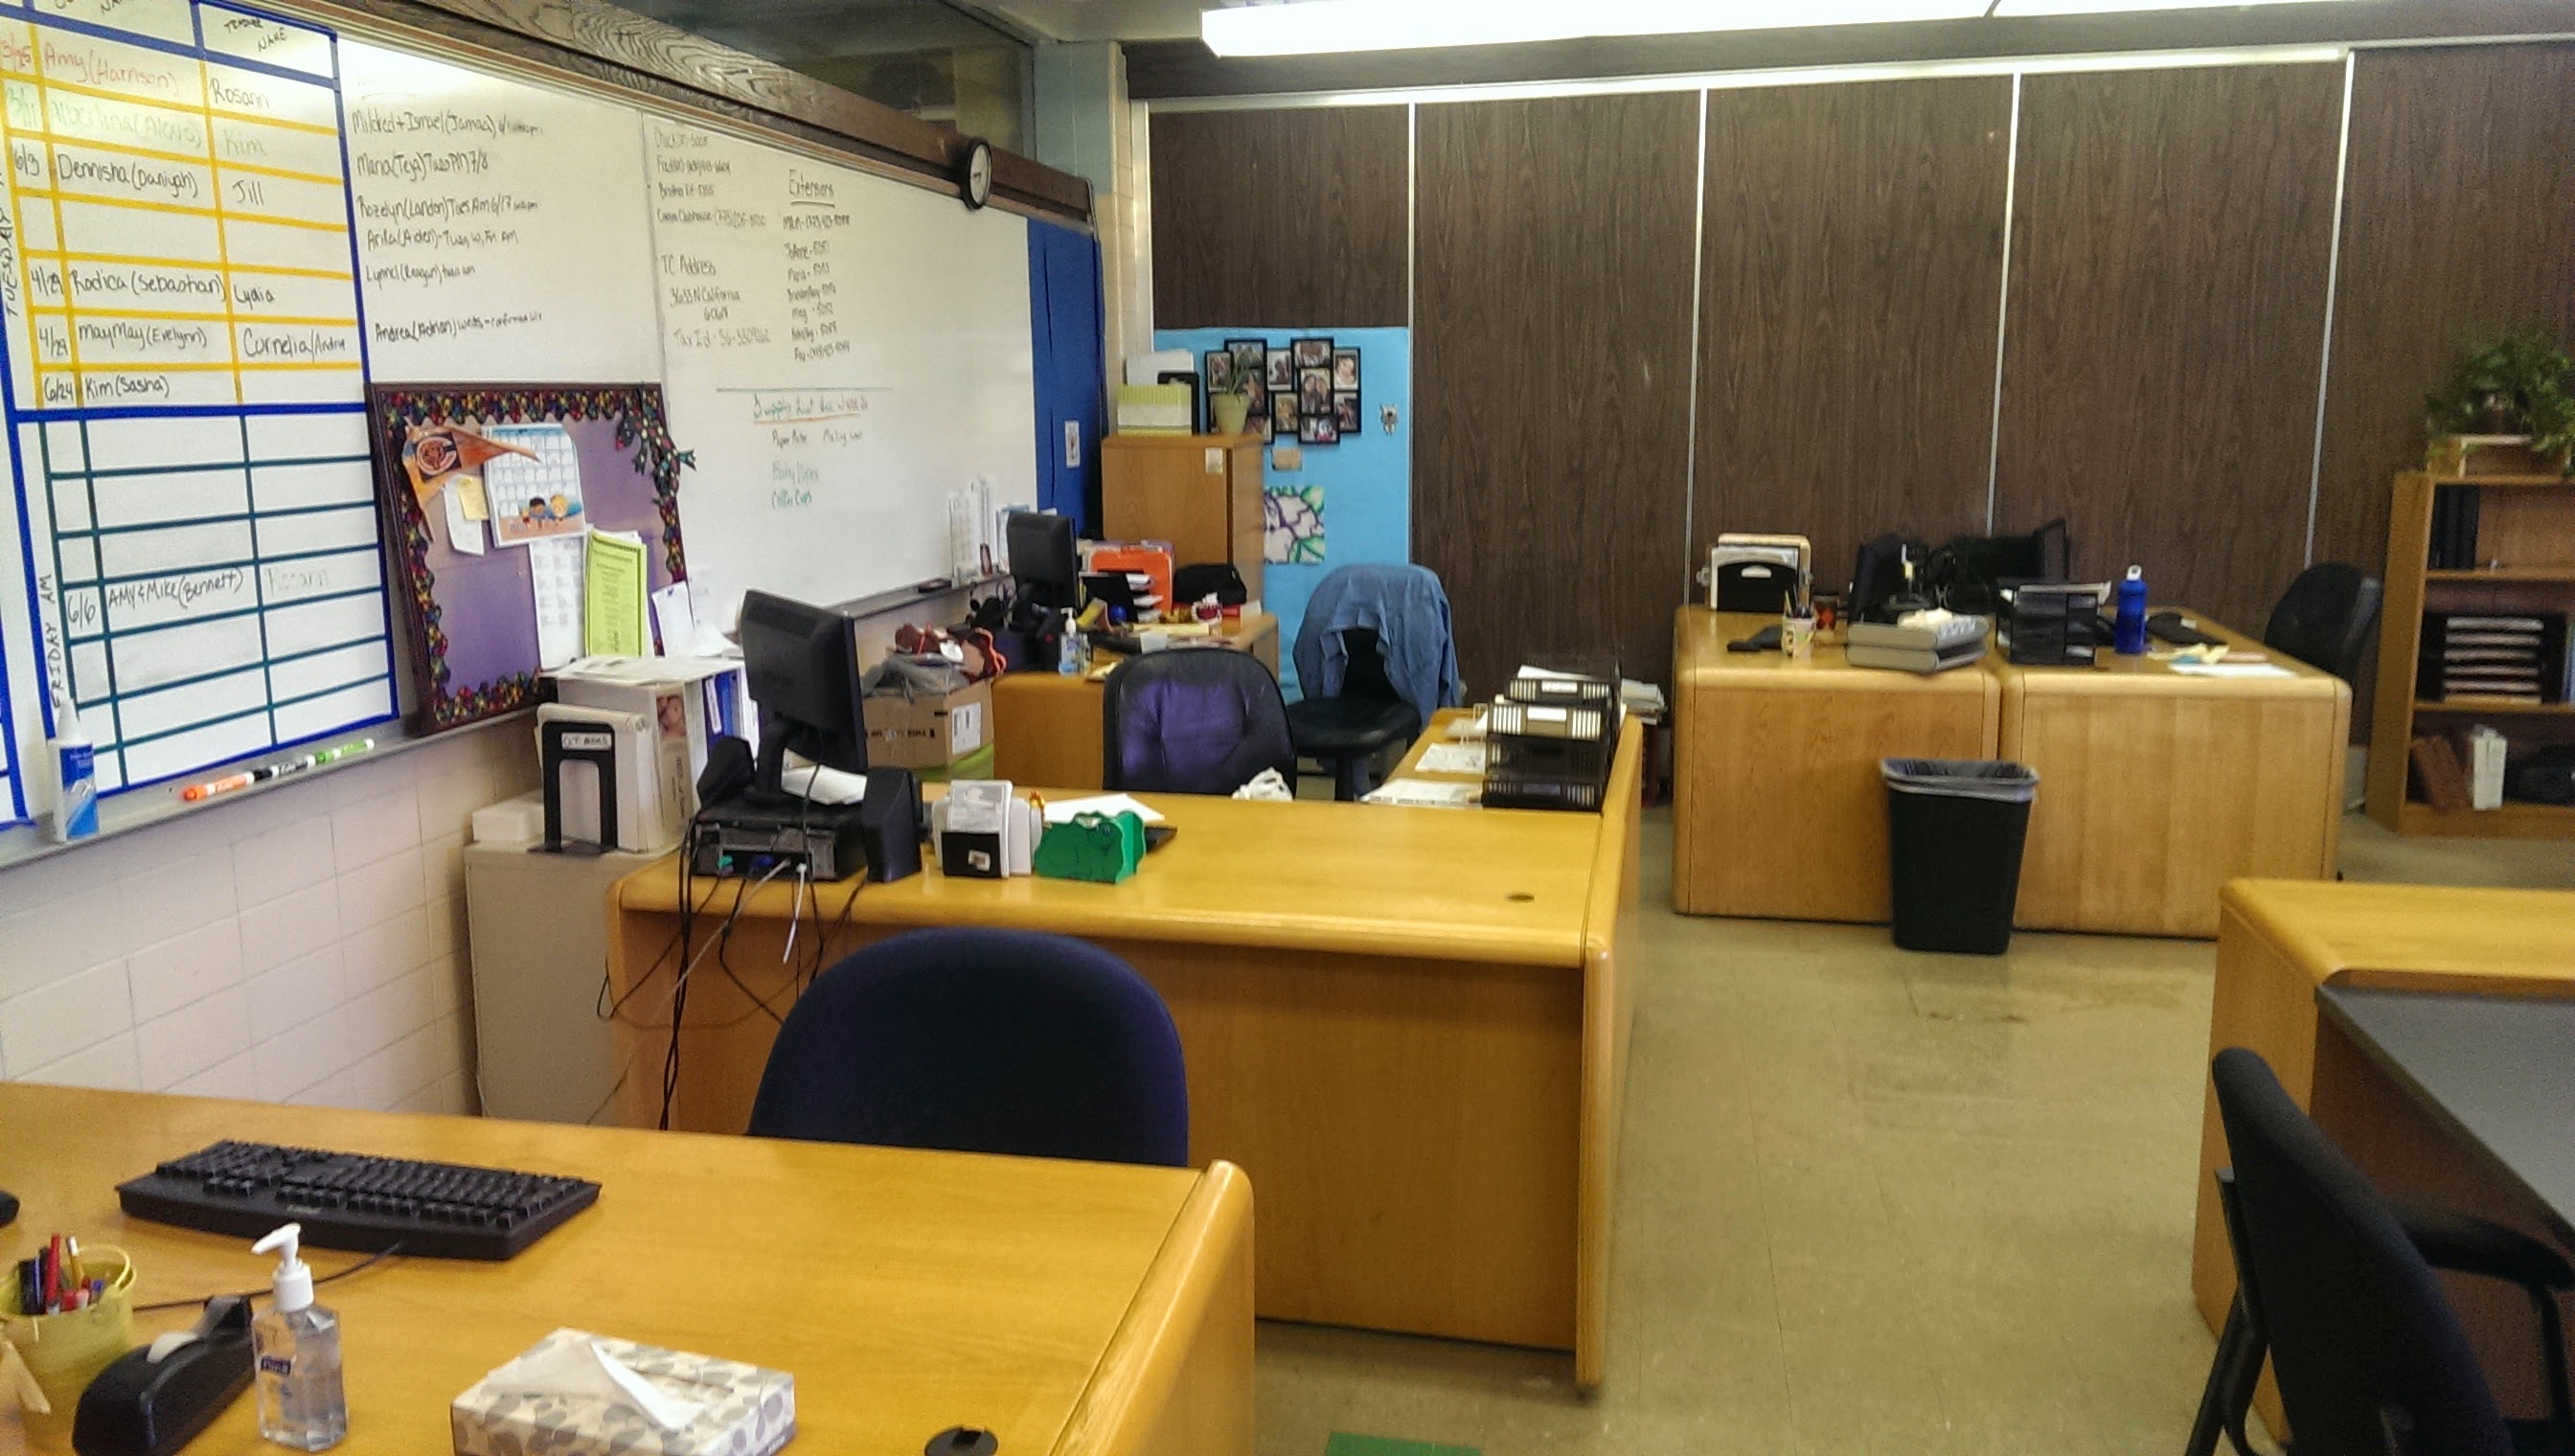 Donating Old Furniture Awesome Donate With Donating Old Furniture Amazing Where To Donate Old